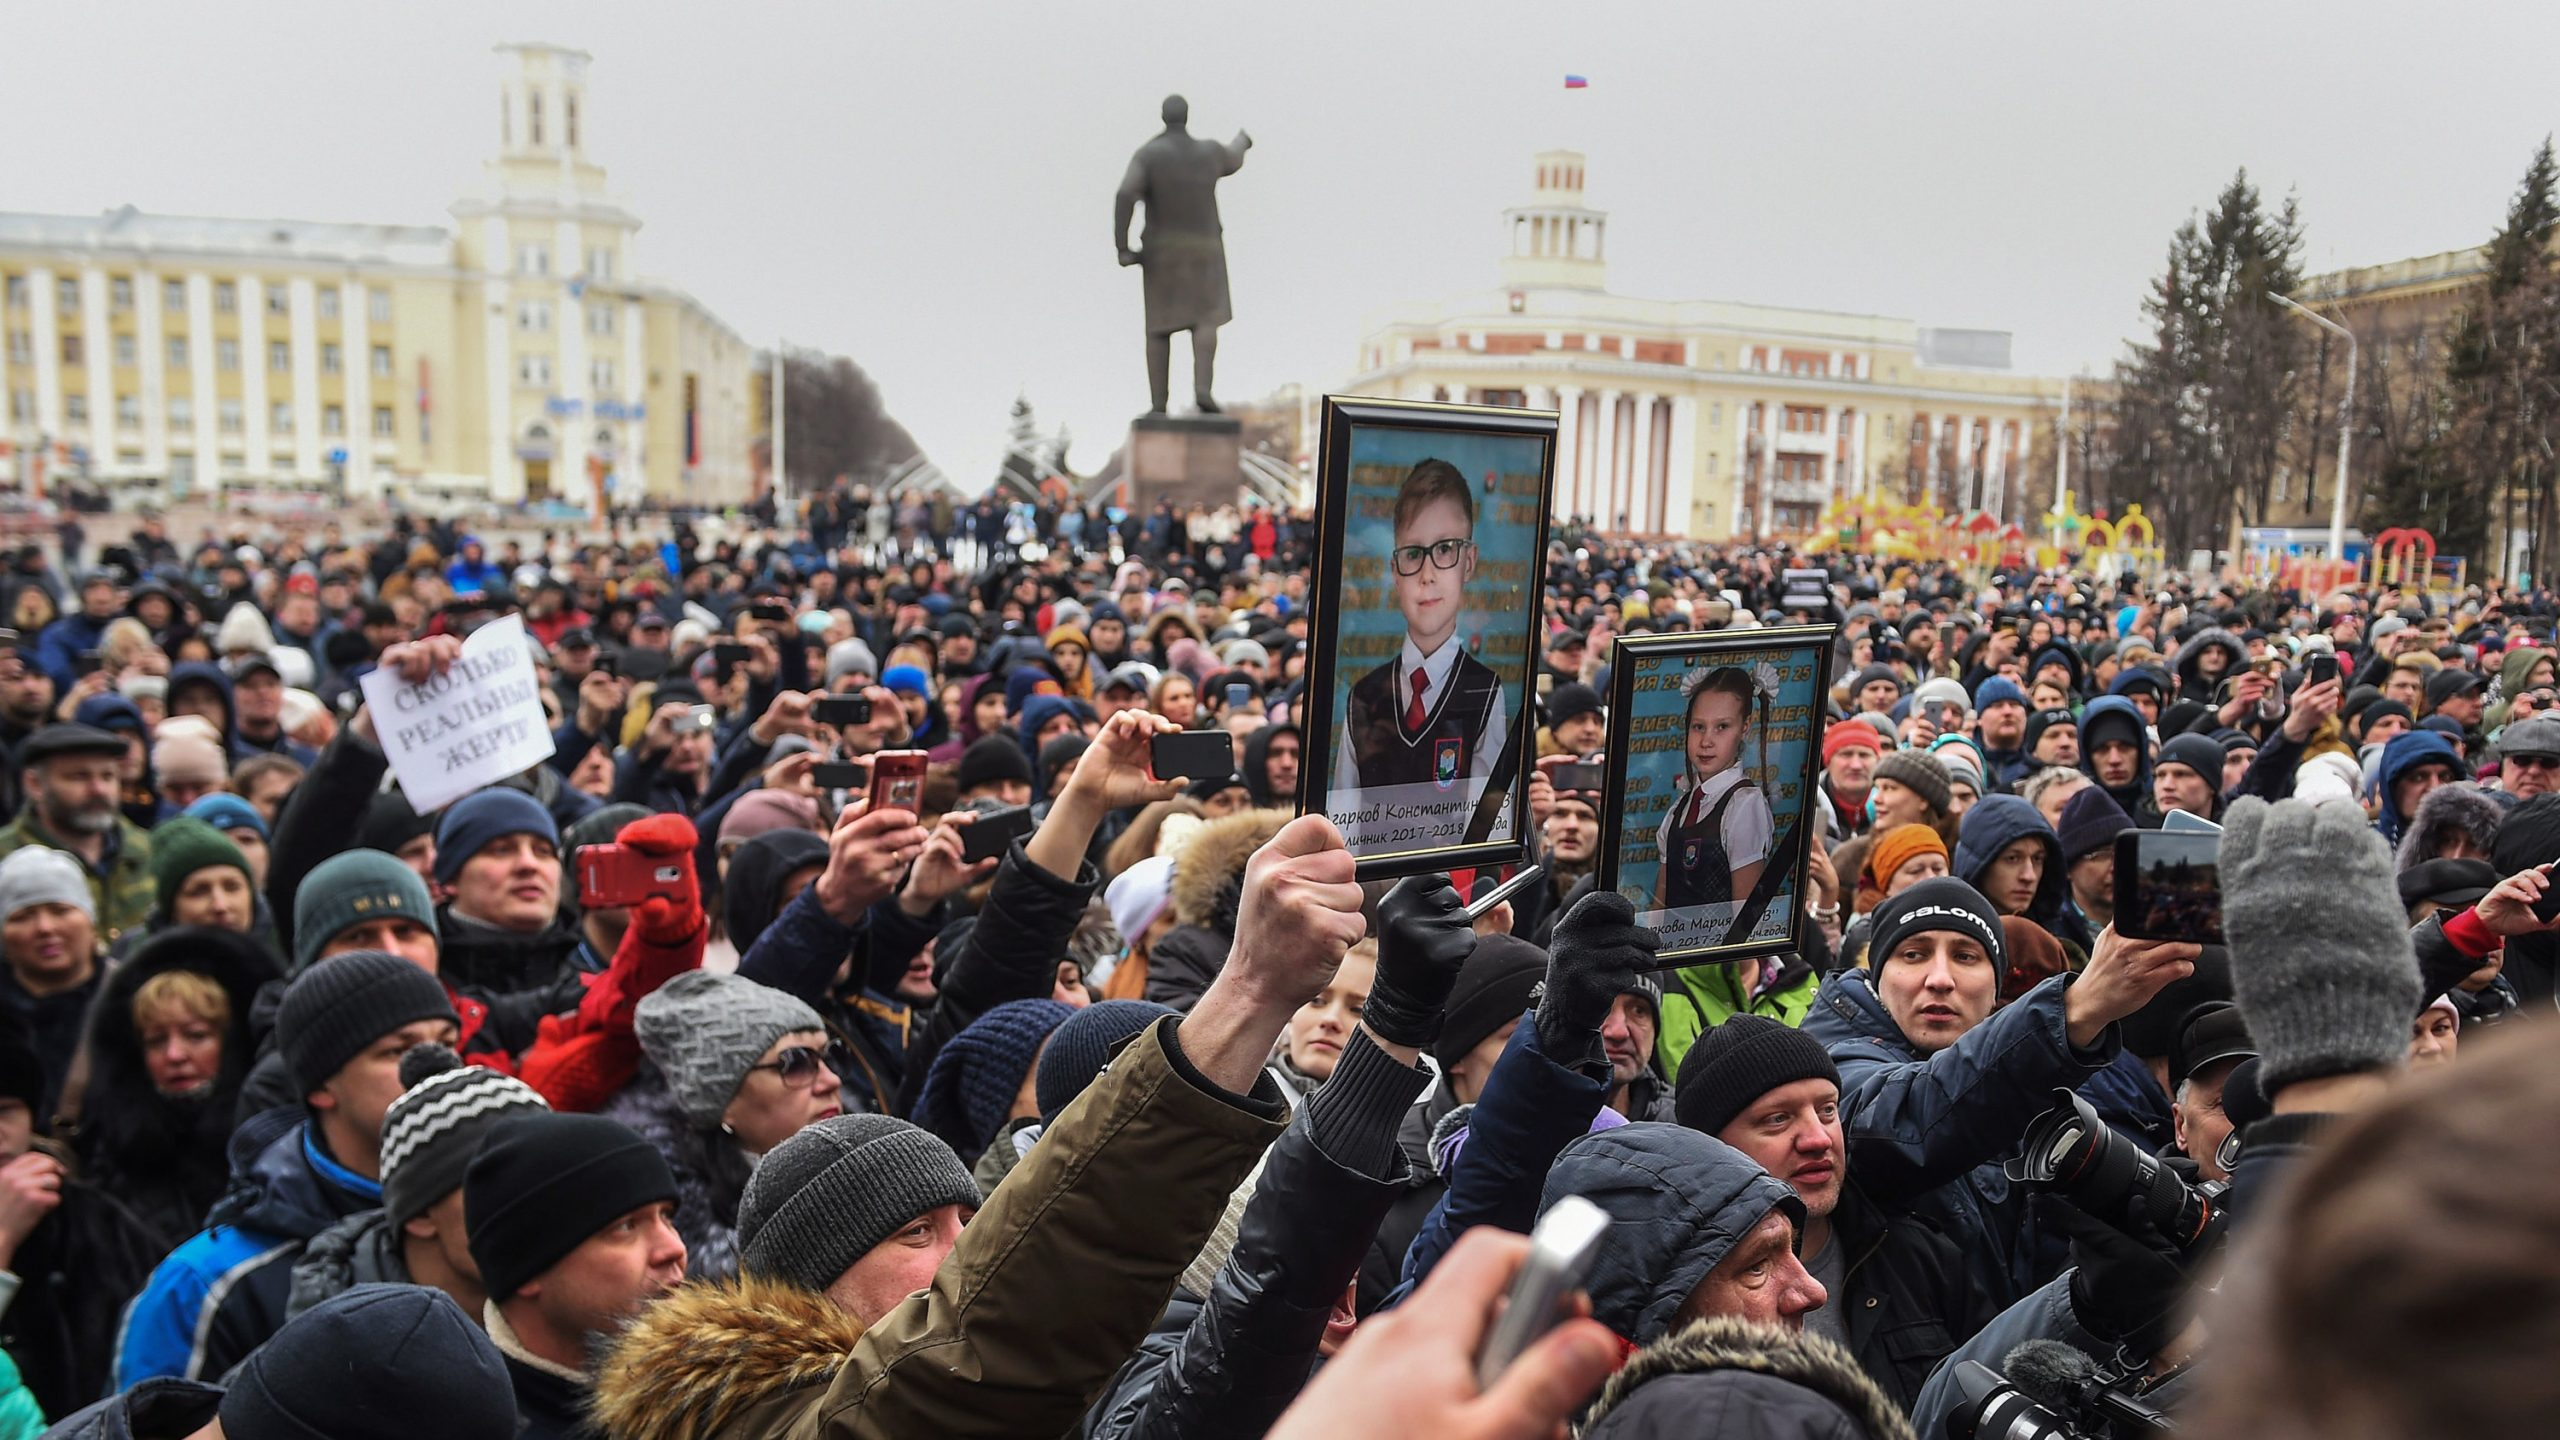 Putin's Grim Reality: Public Fury Over Children's Deaths in Mall